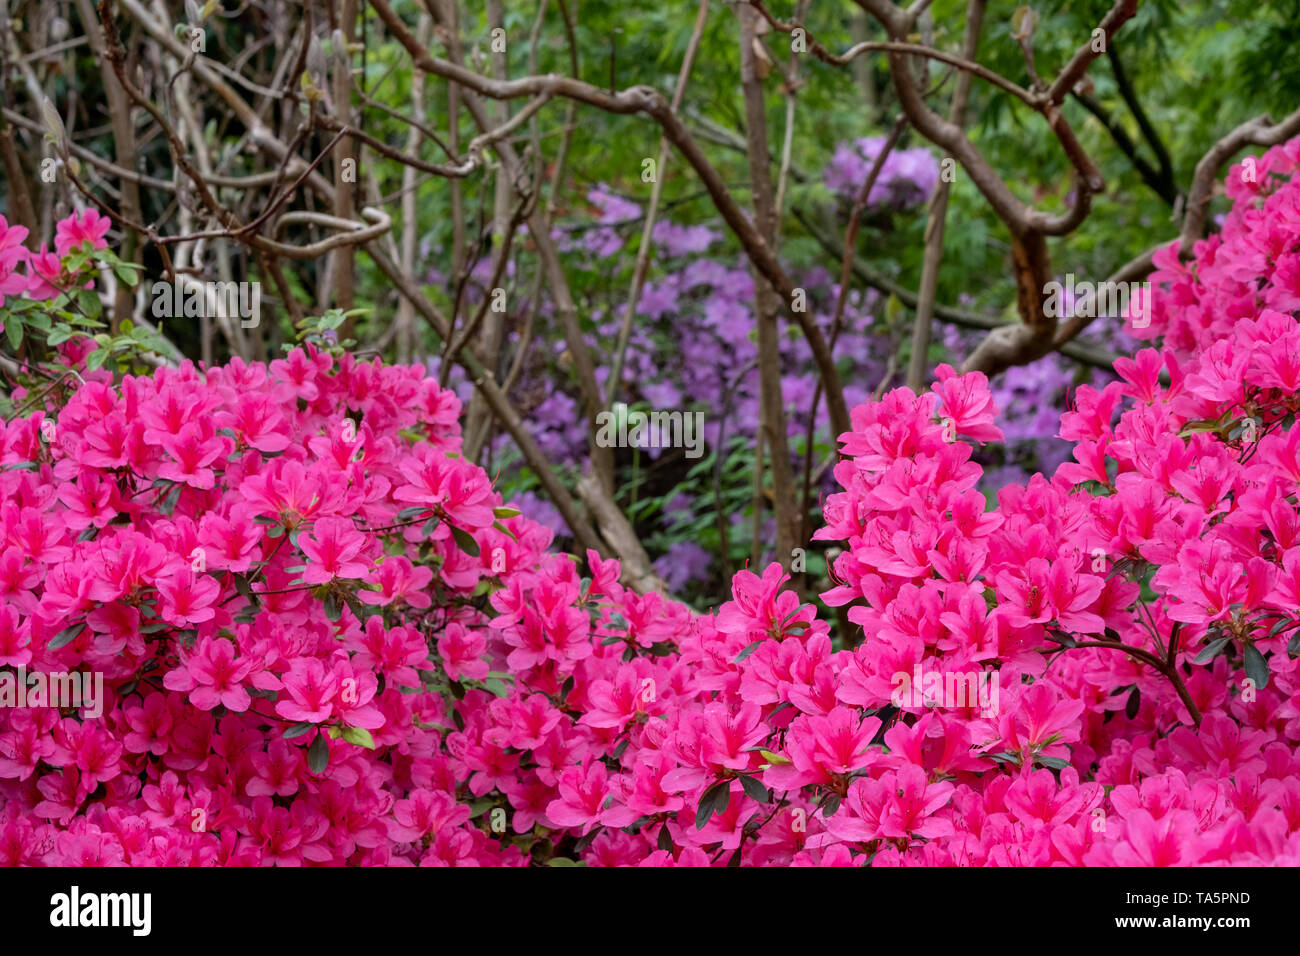 Bright pink azalea flowers in bloom in spring. Photographed in Surrey, UK. Stock Photo